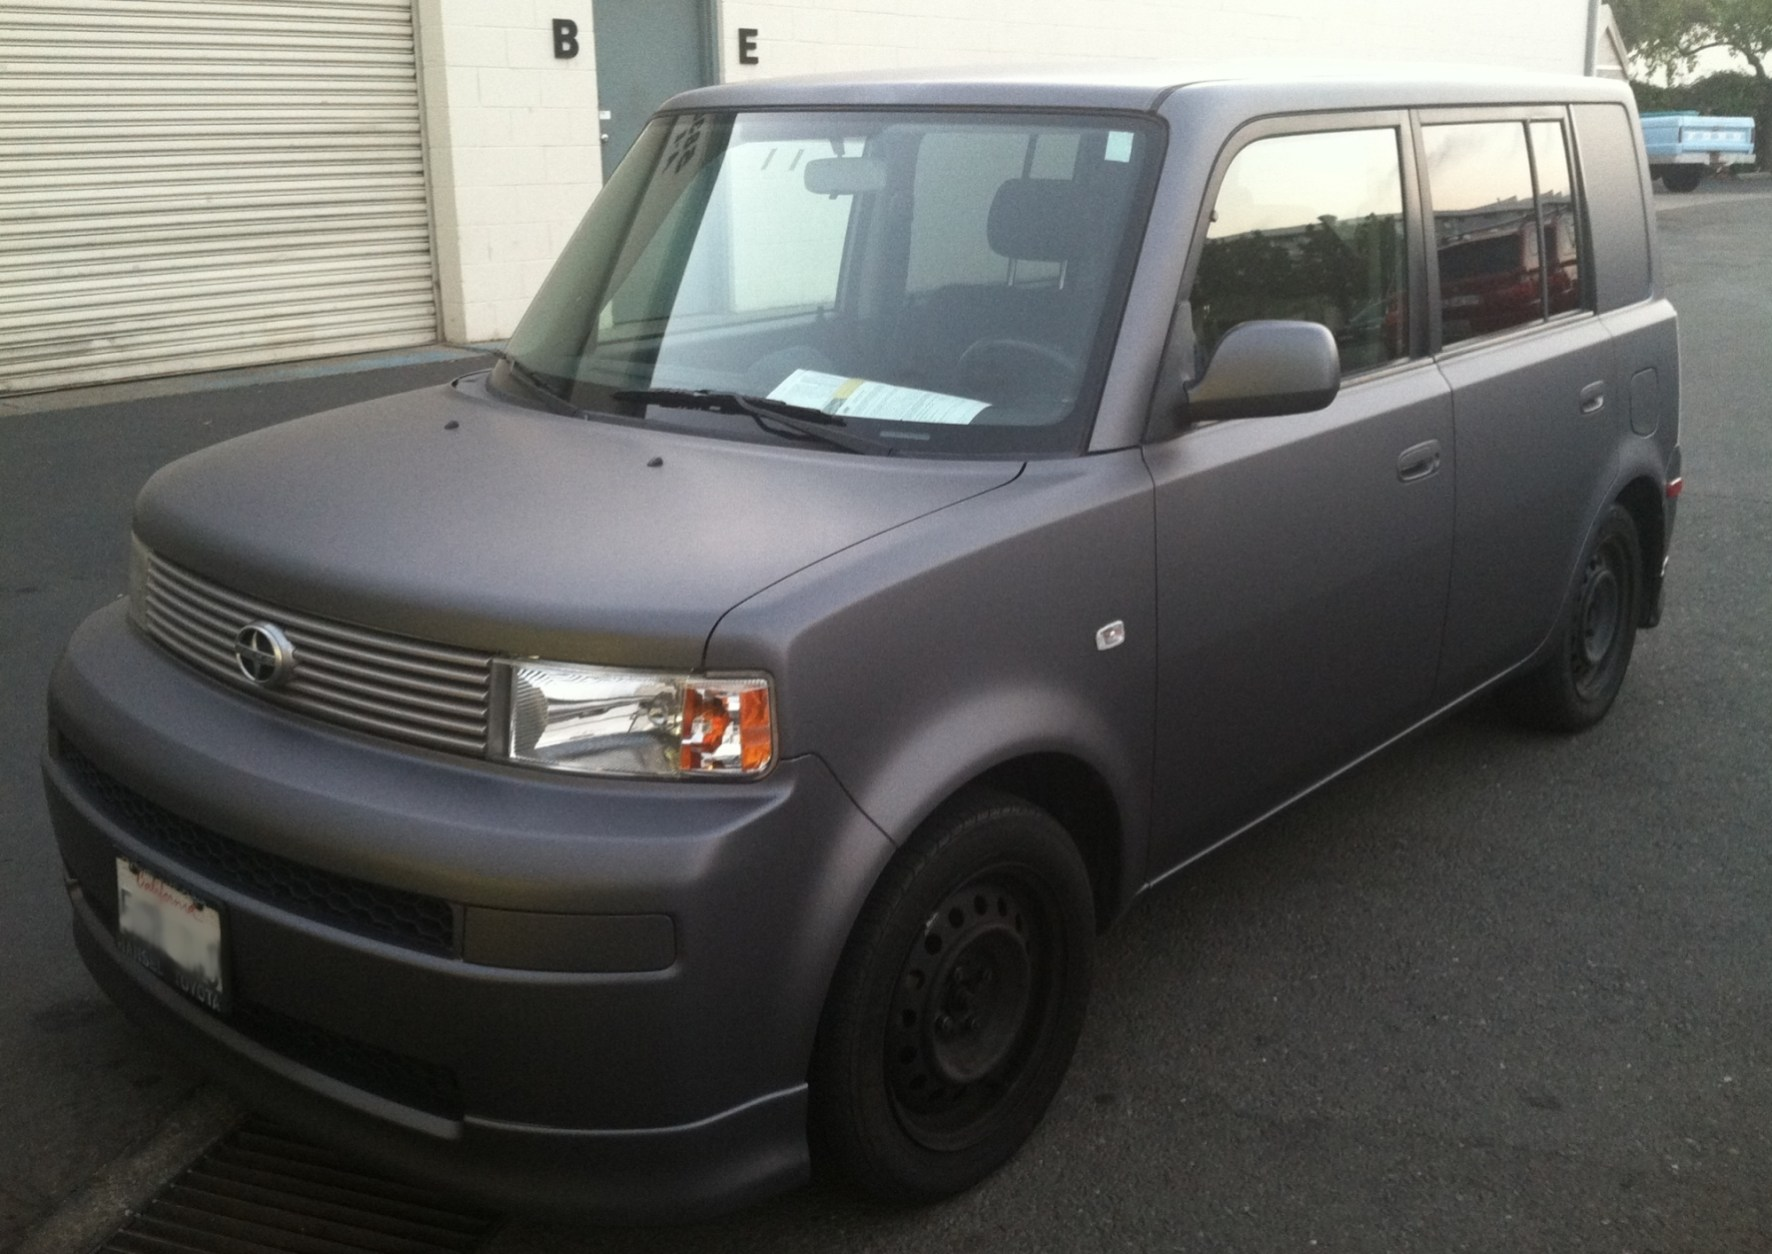 Matte Black Scion Color Change Wrap Custom Vehicle Wraps